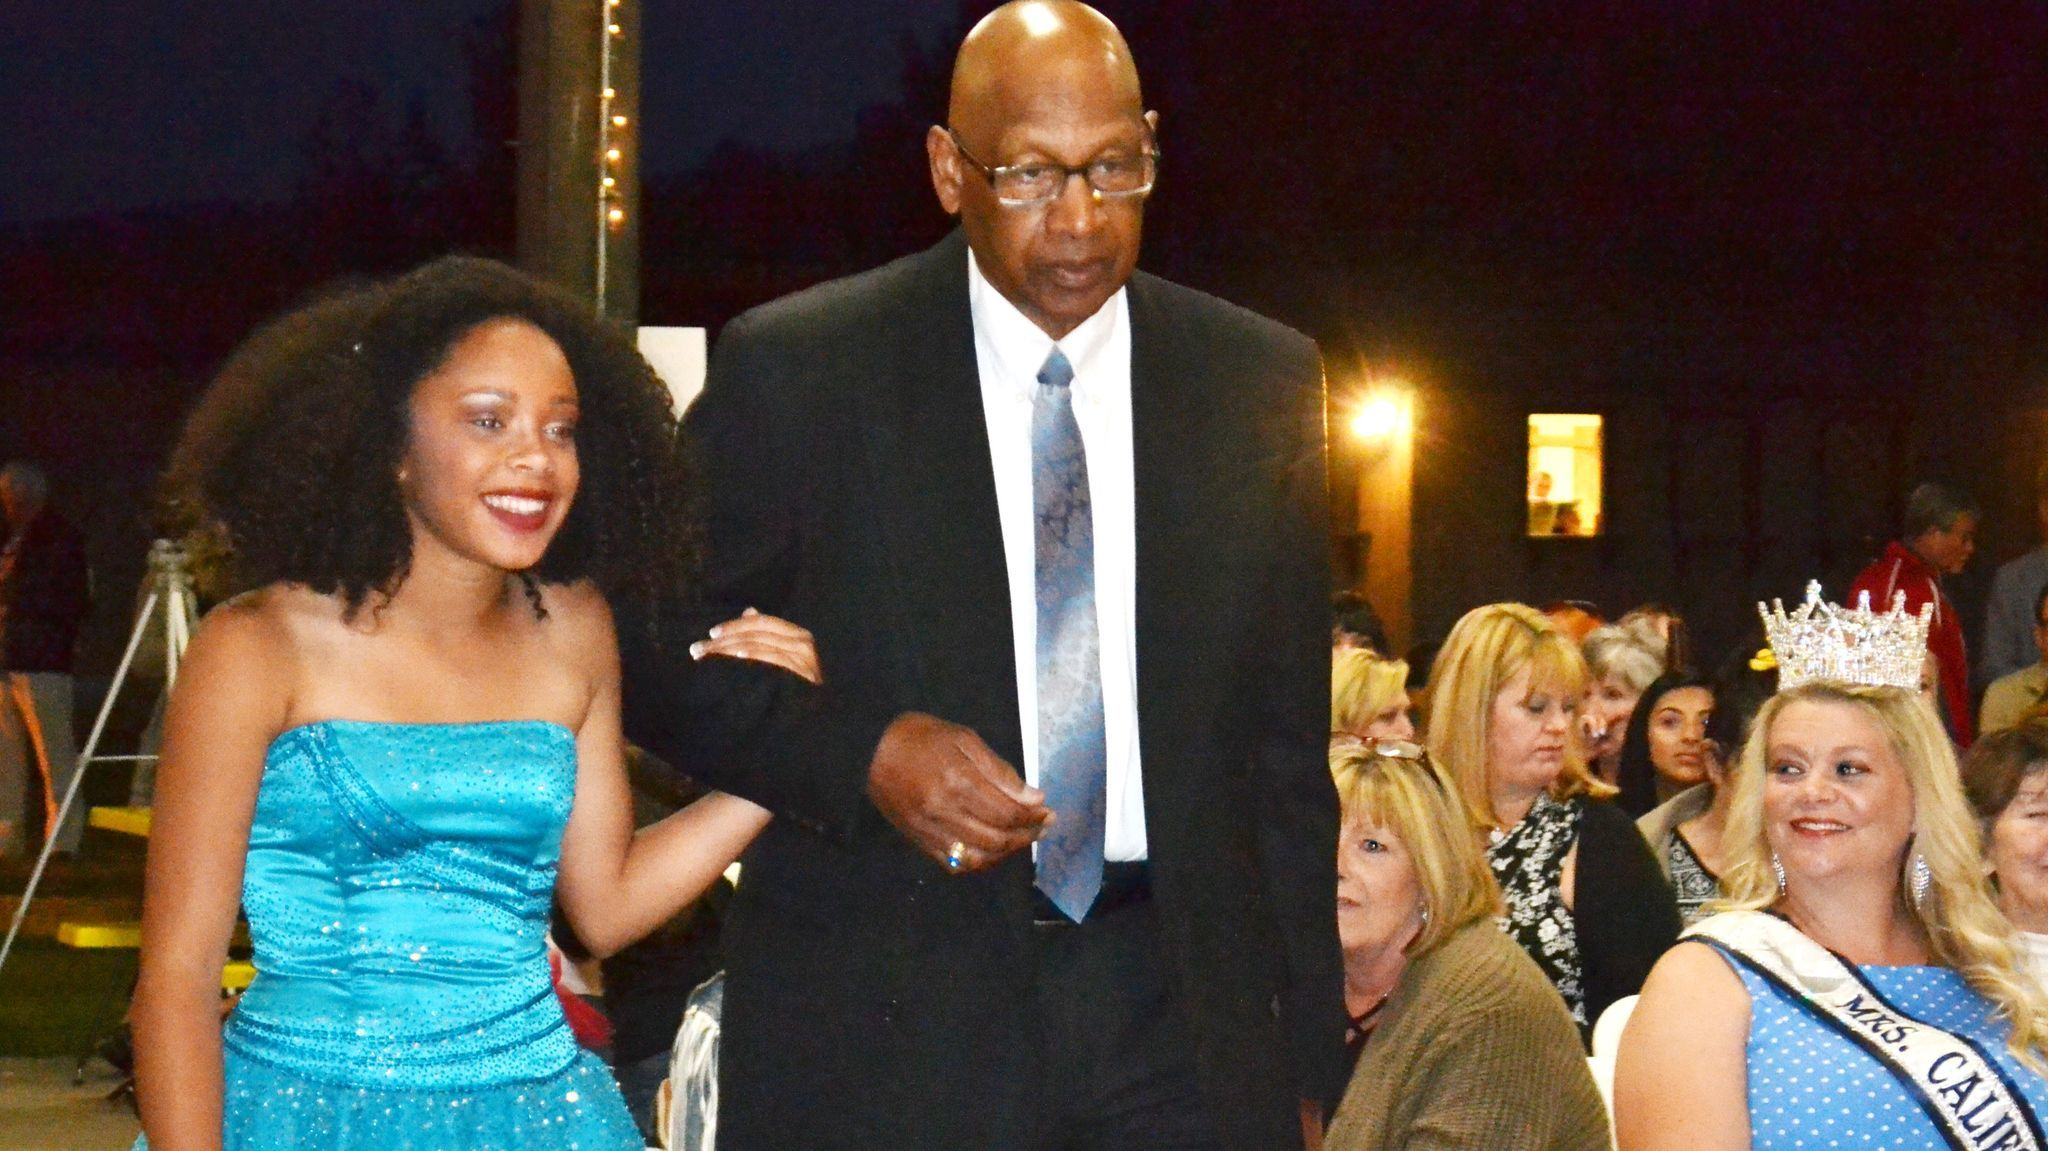 Teen Miss contestant Erika Bradley is escorted by her grandfather, Leon Simms, during the evening gown portion of the pageant.